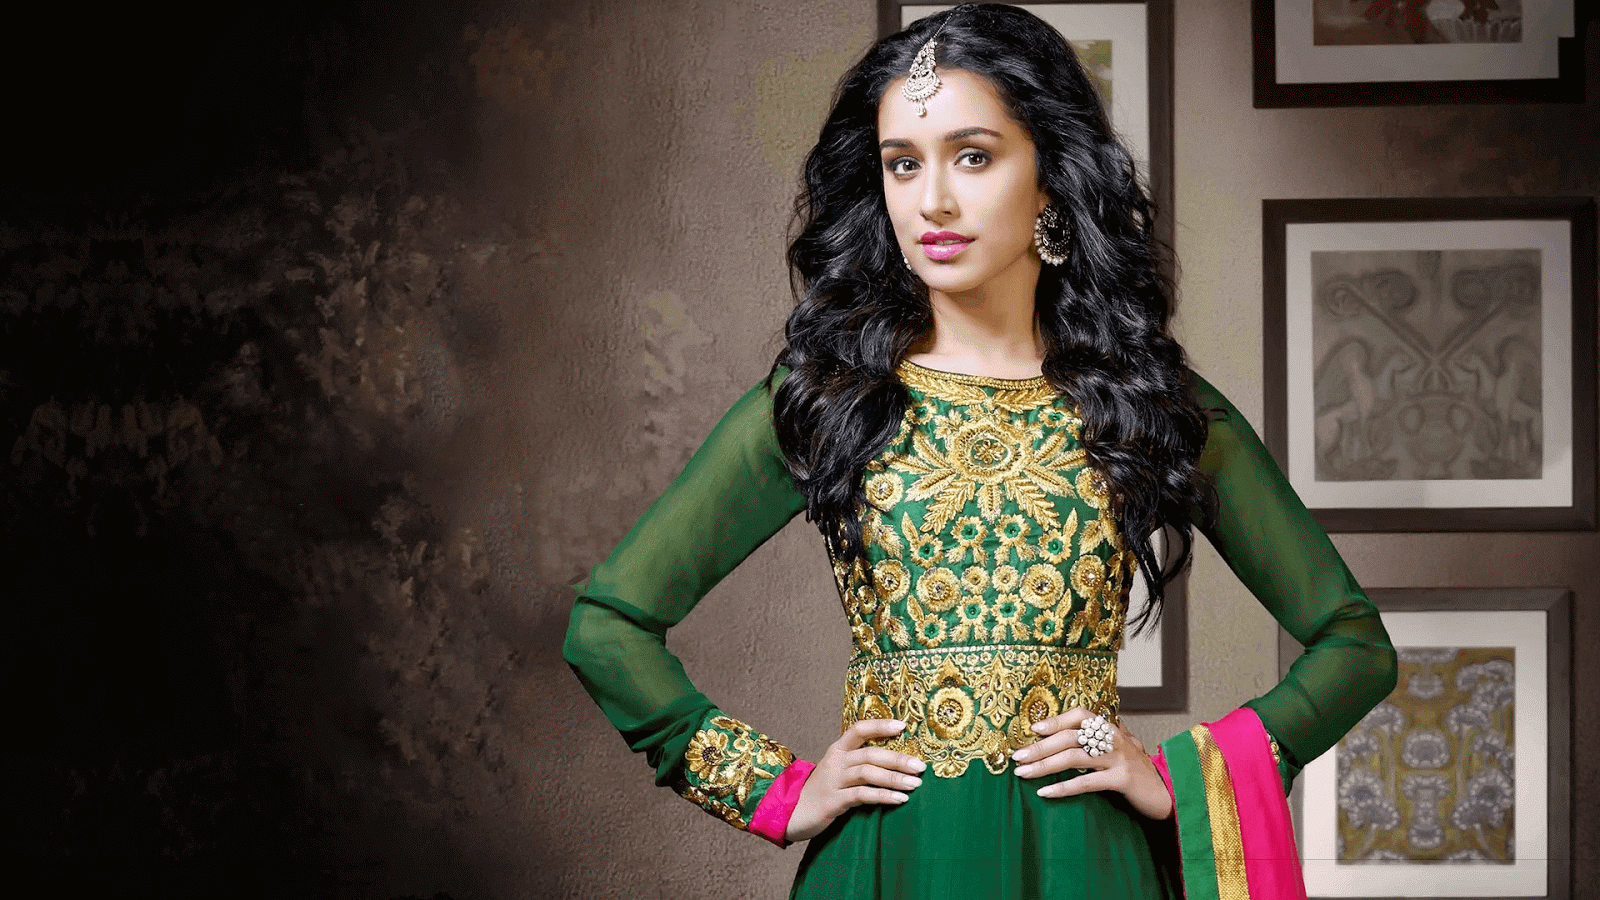 shraddha kapoor bhatt hd wallpapers 1080p 2016 - wallpaper cave